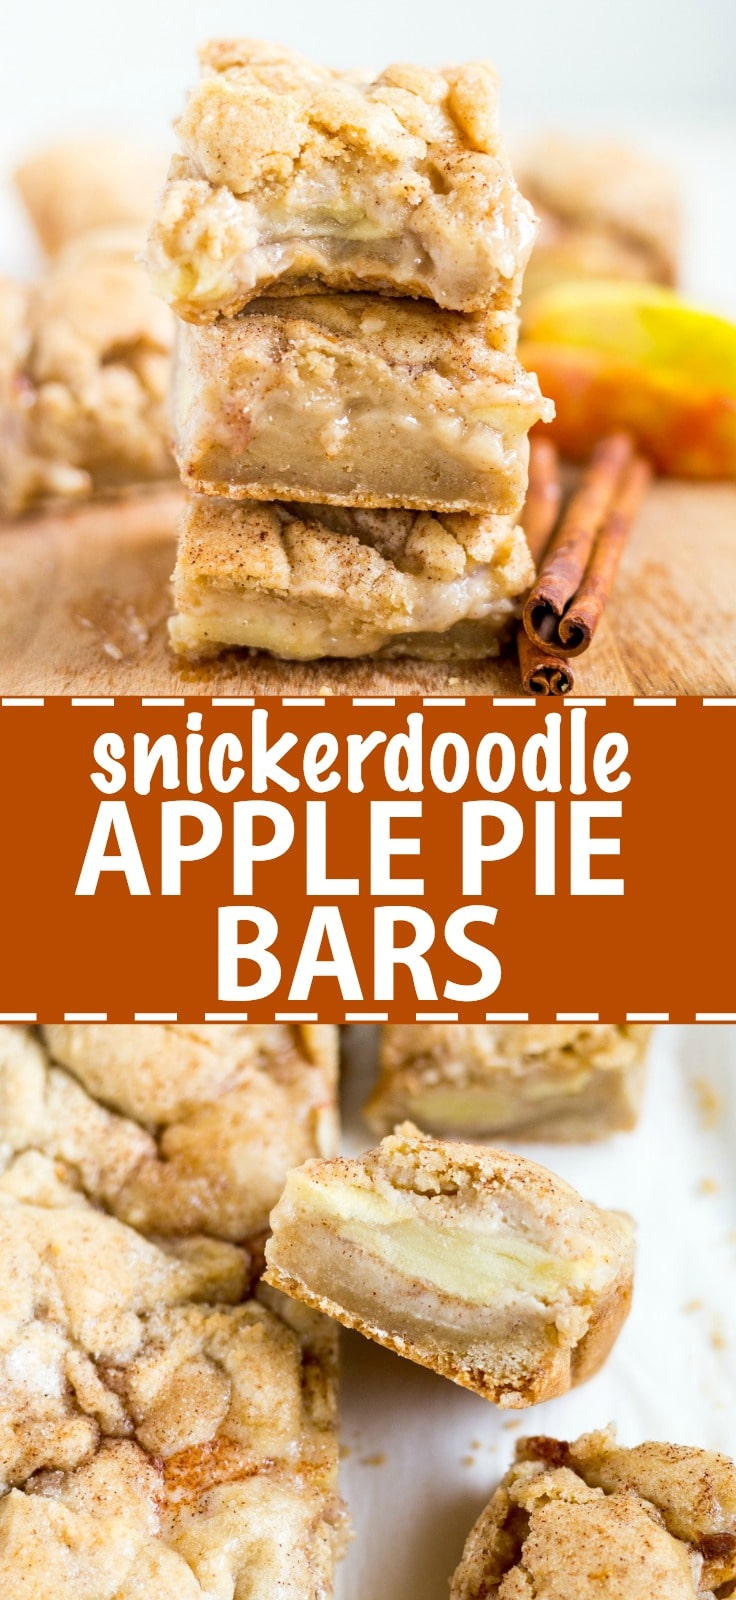 Sweet and gooey snickerdoodle apple pie bars are the perfect fall dessert. The base layer is a snickerdoodle bar topped with cinnamon-spice apple pie filling and topped with more snickerdoodle. It's delicious served warm with ice cream!